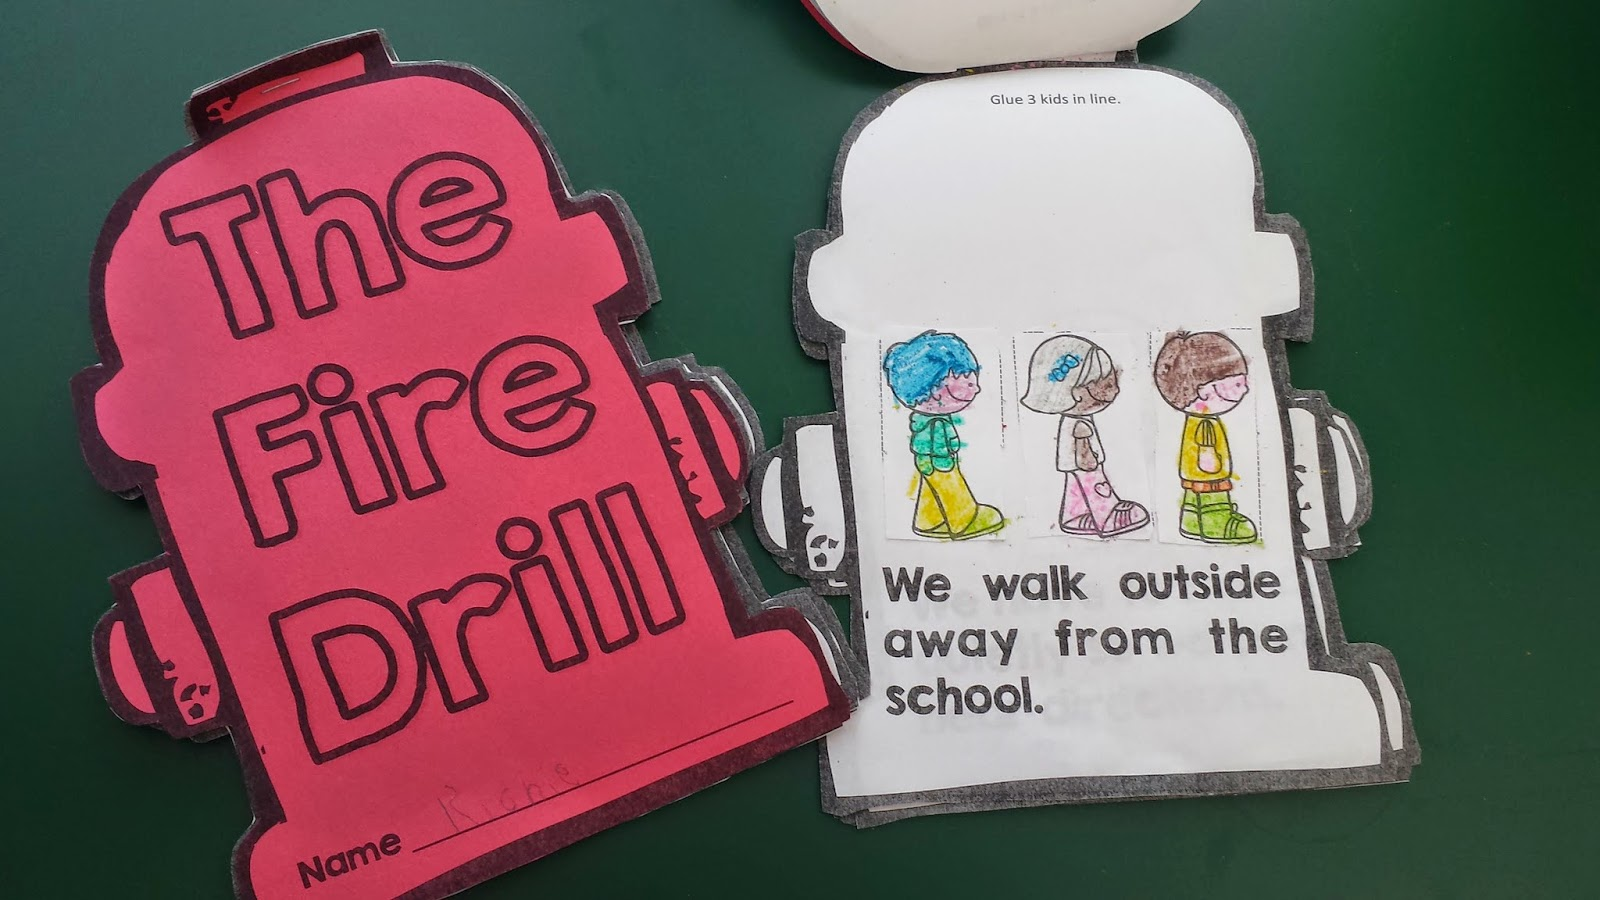 photo of fire drill booklet